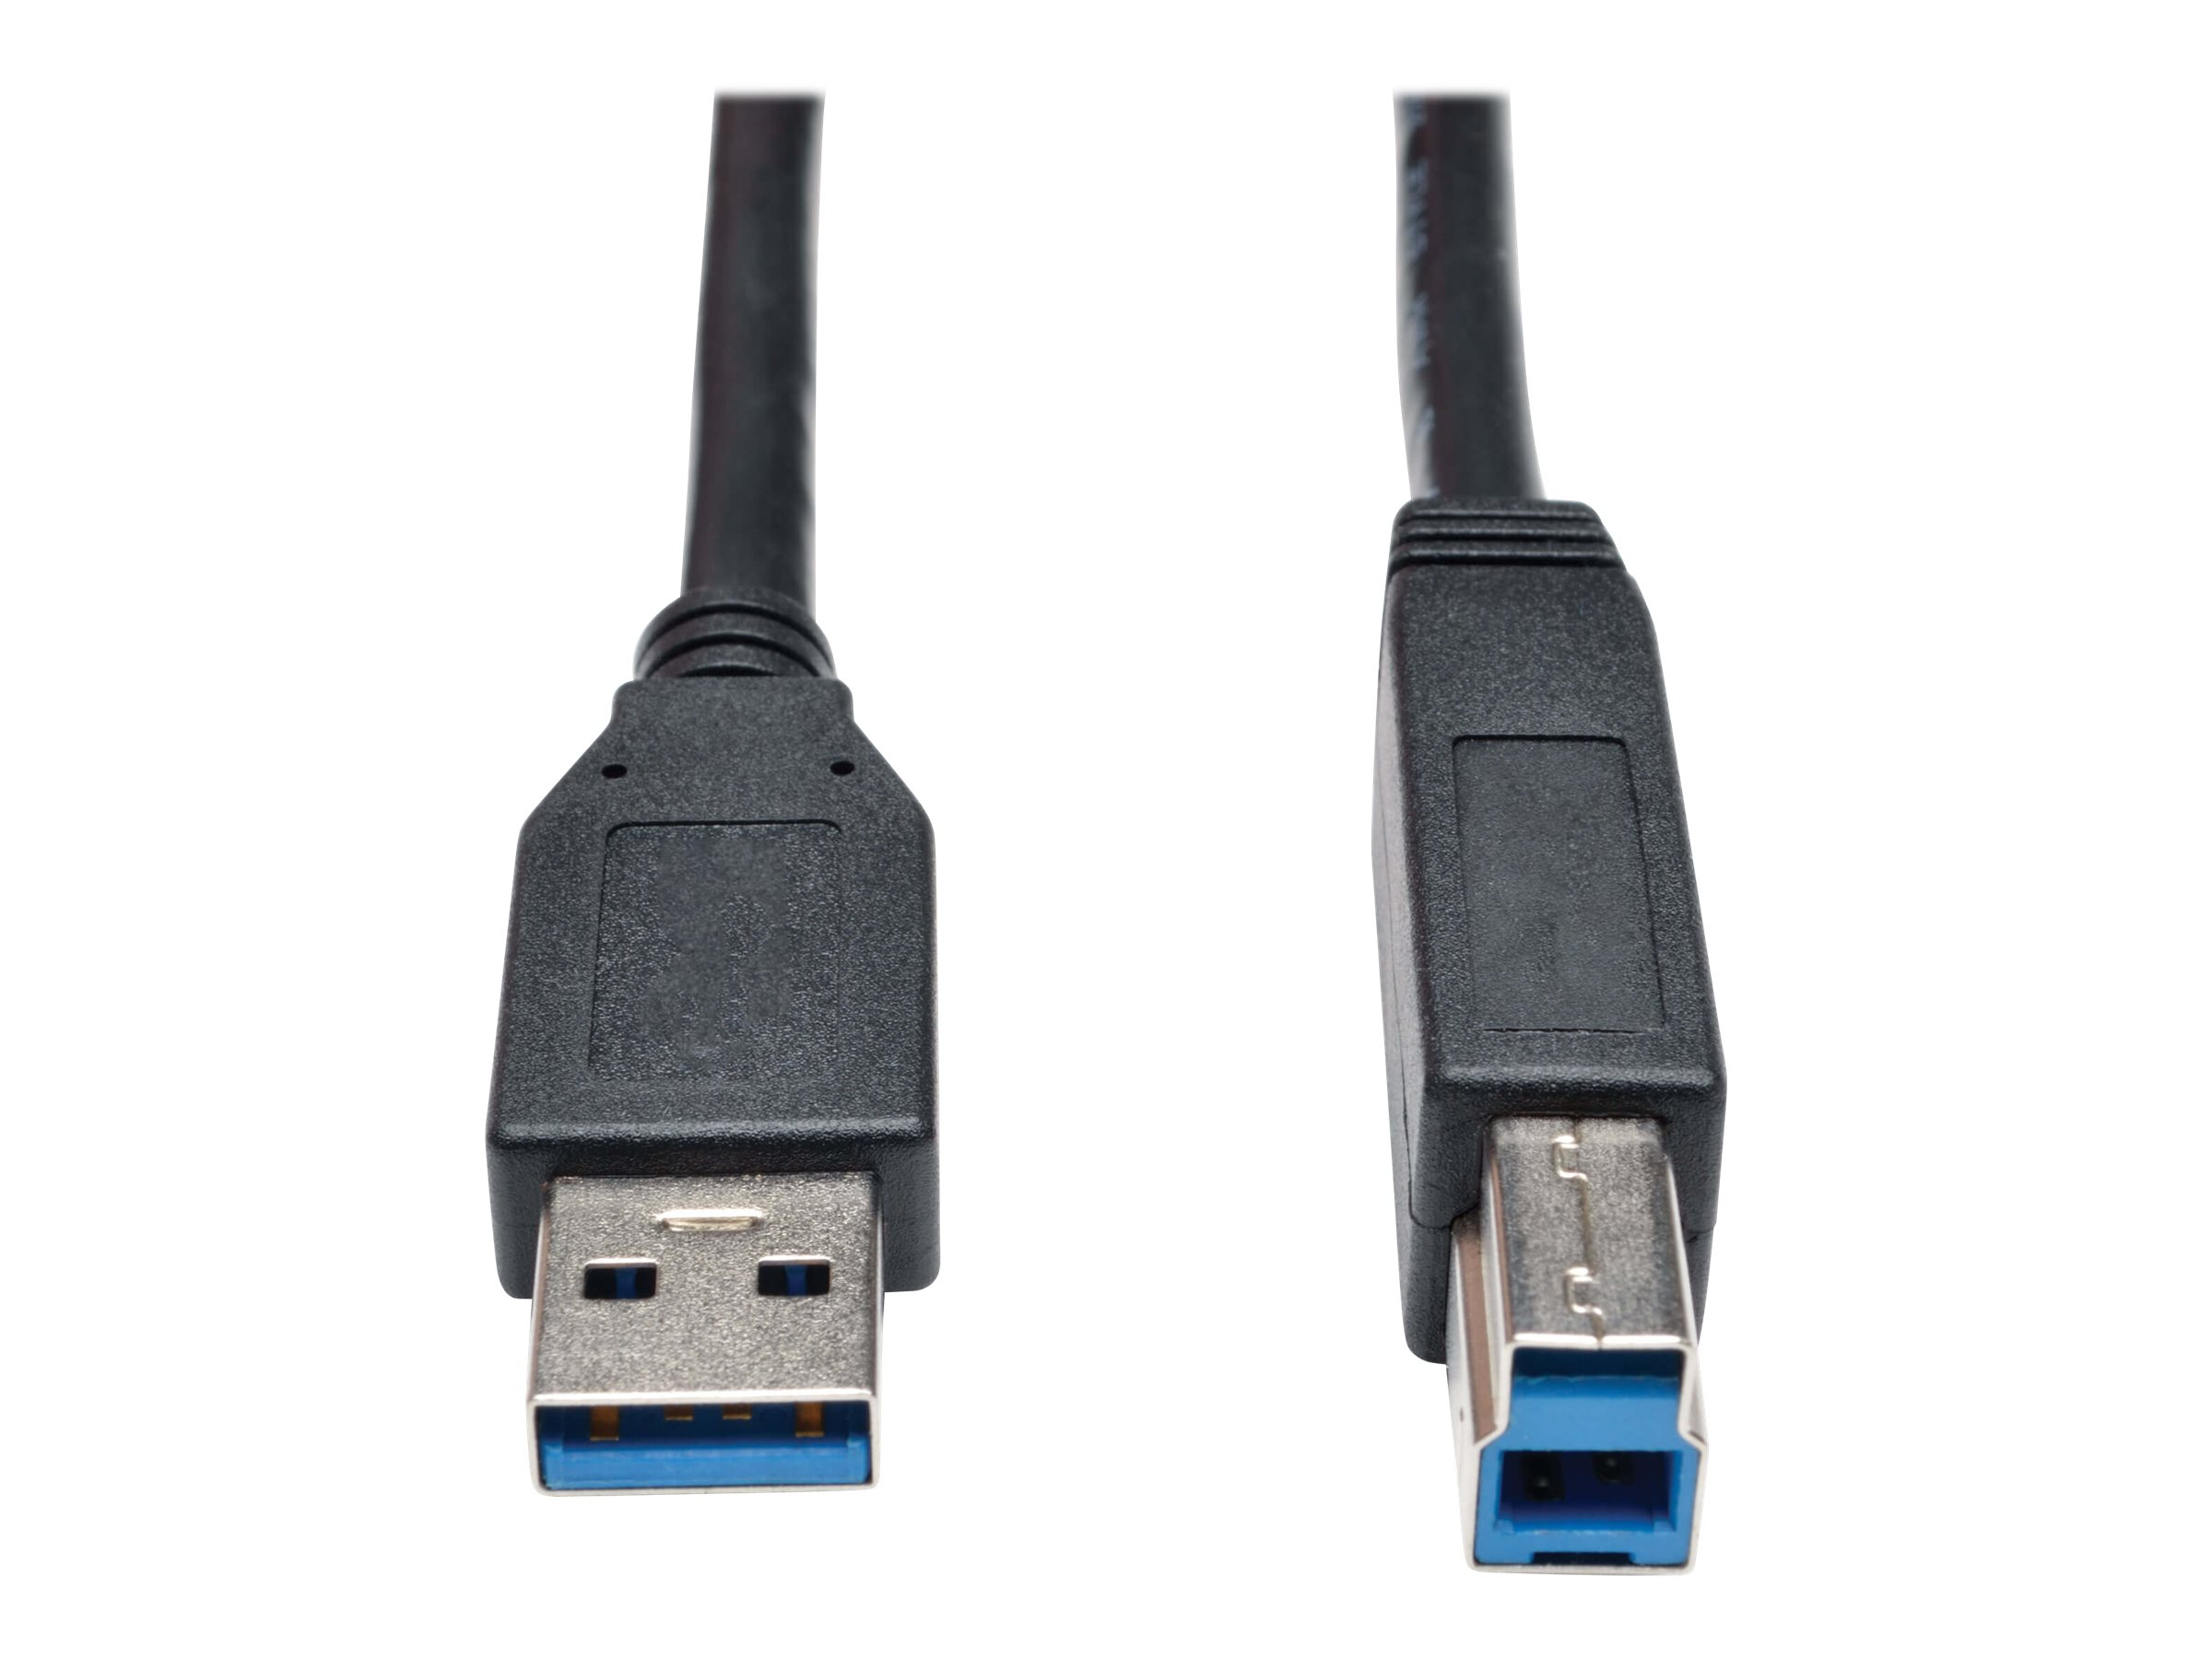 Tripp Lite 10ft USB 3.0 SuperSpeed Device Cable 5 Gbps A Male to B Male Black 10' - USB cable - 3.05 m